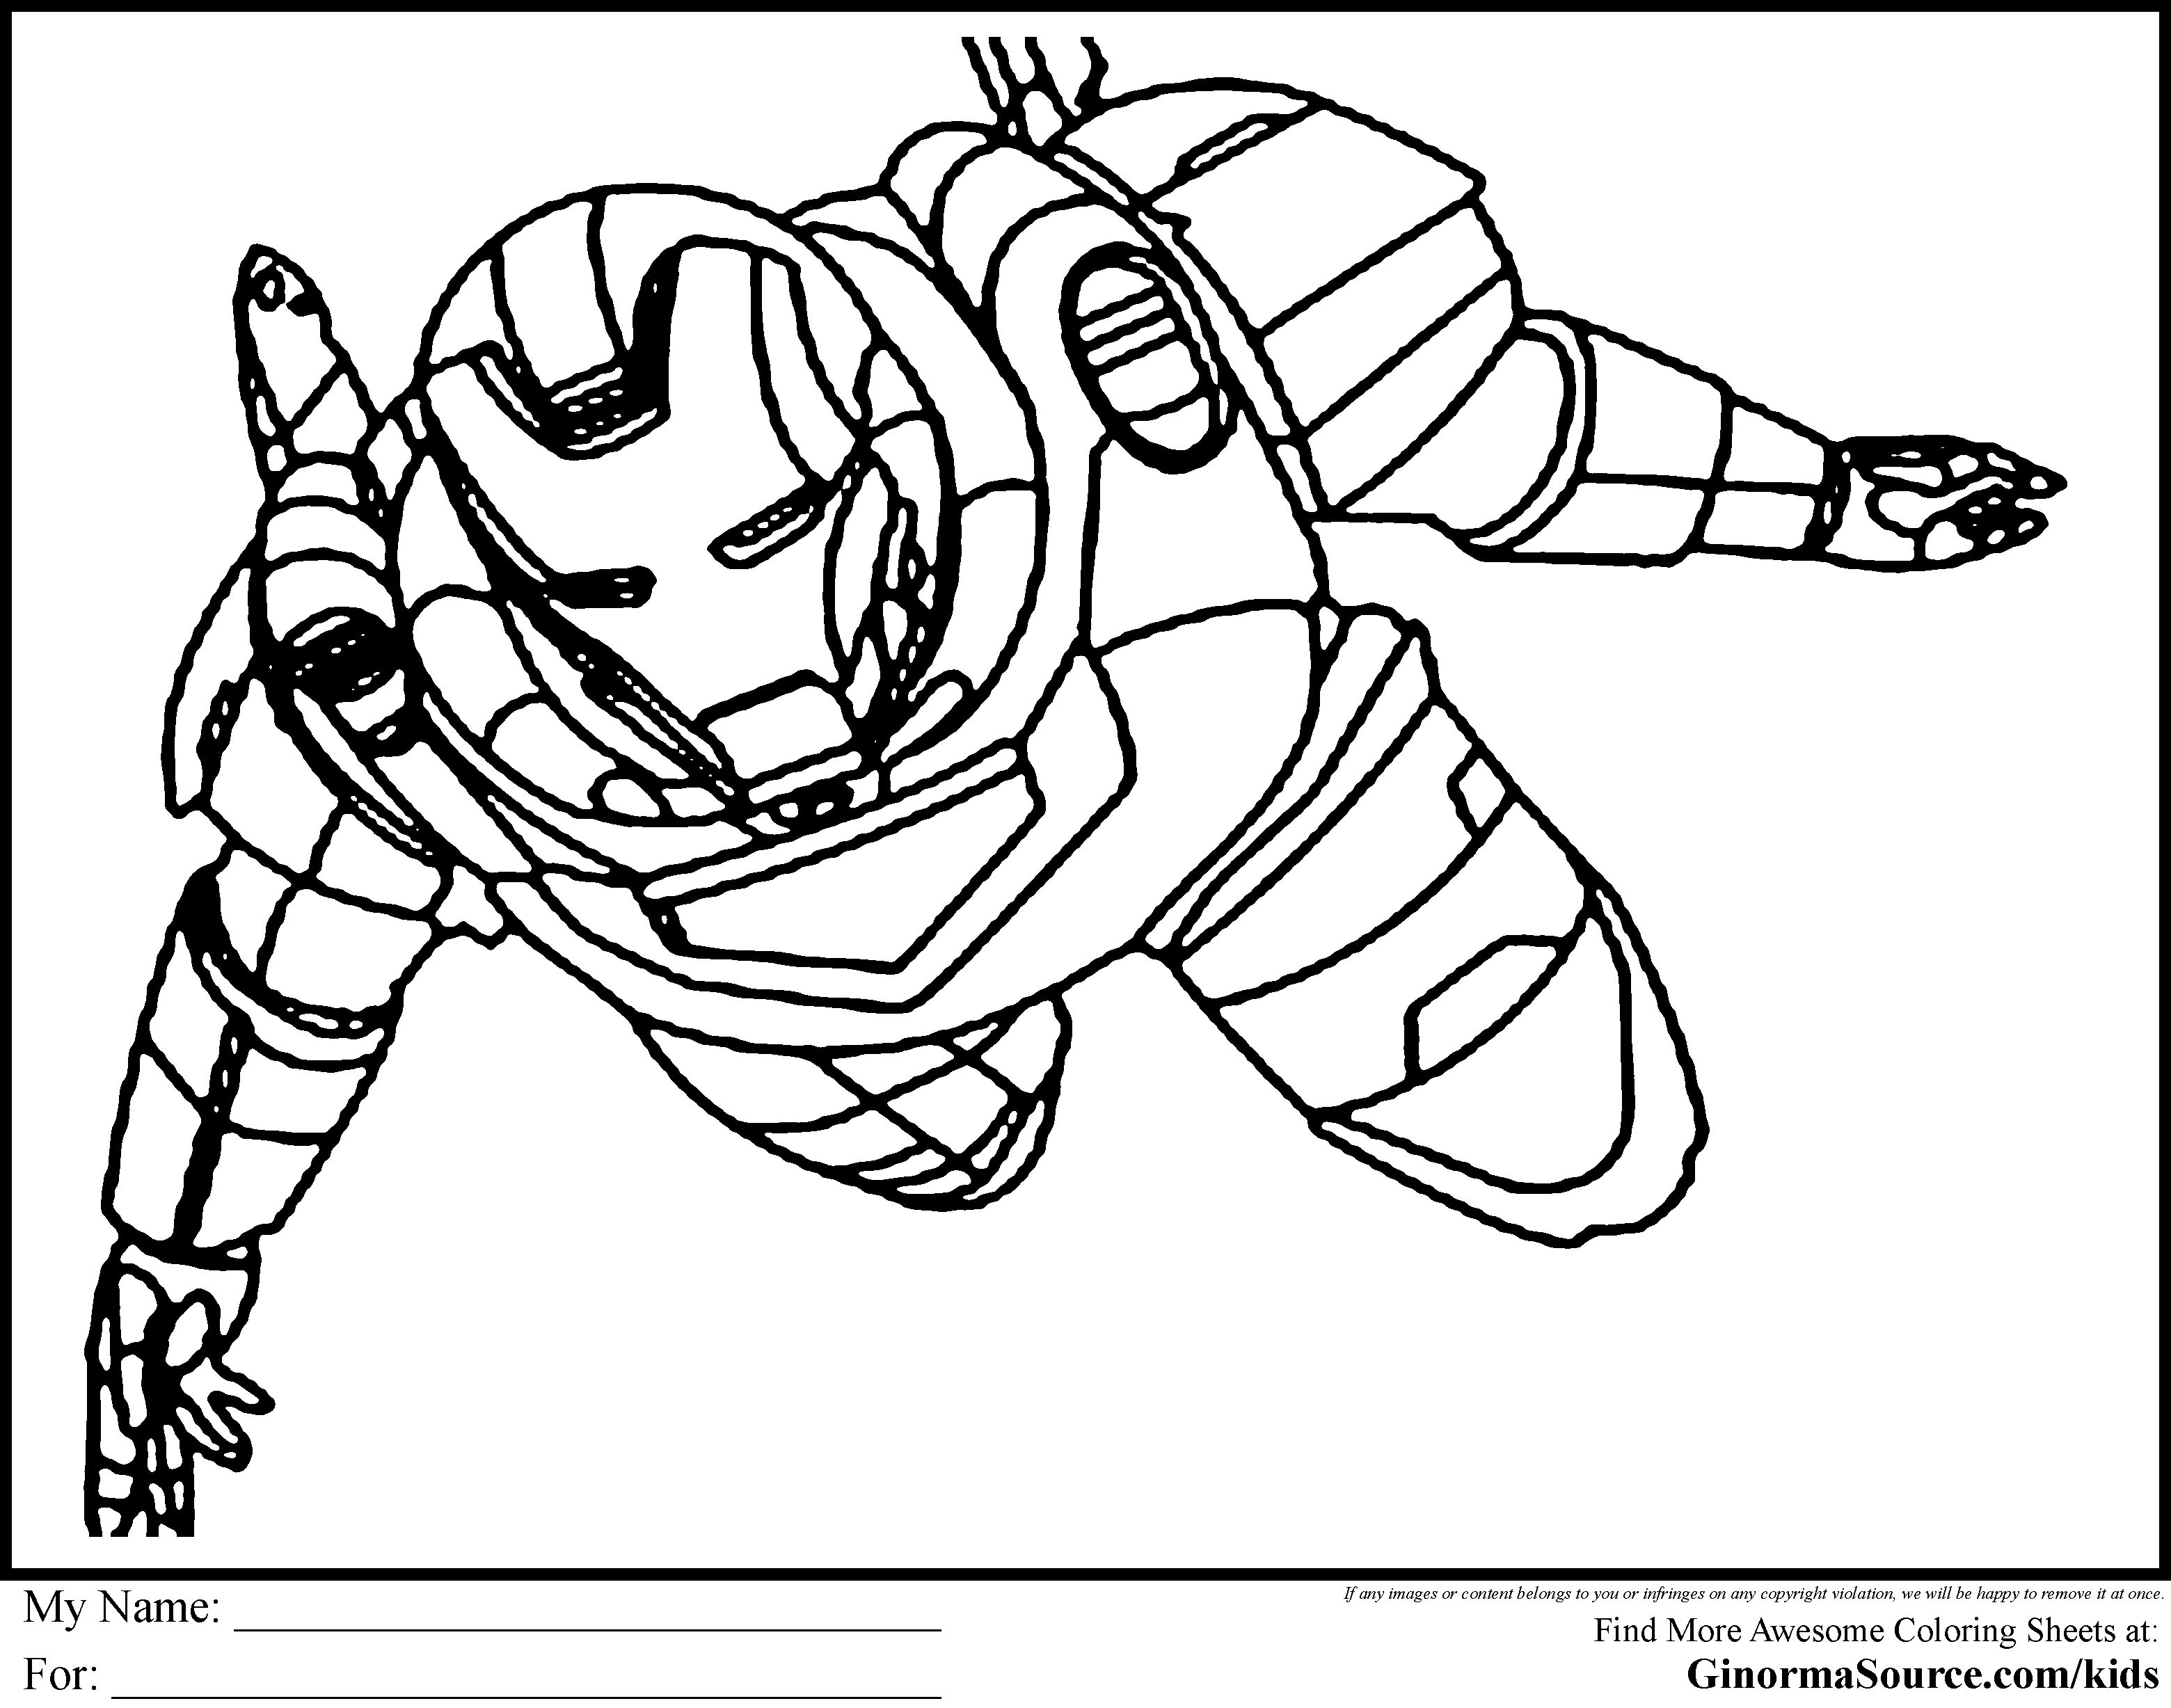 Hero coloring pages to download and print for free